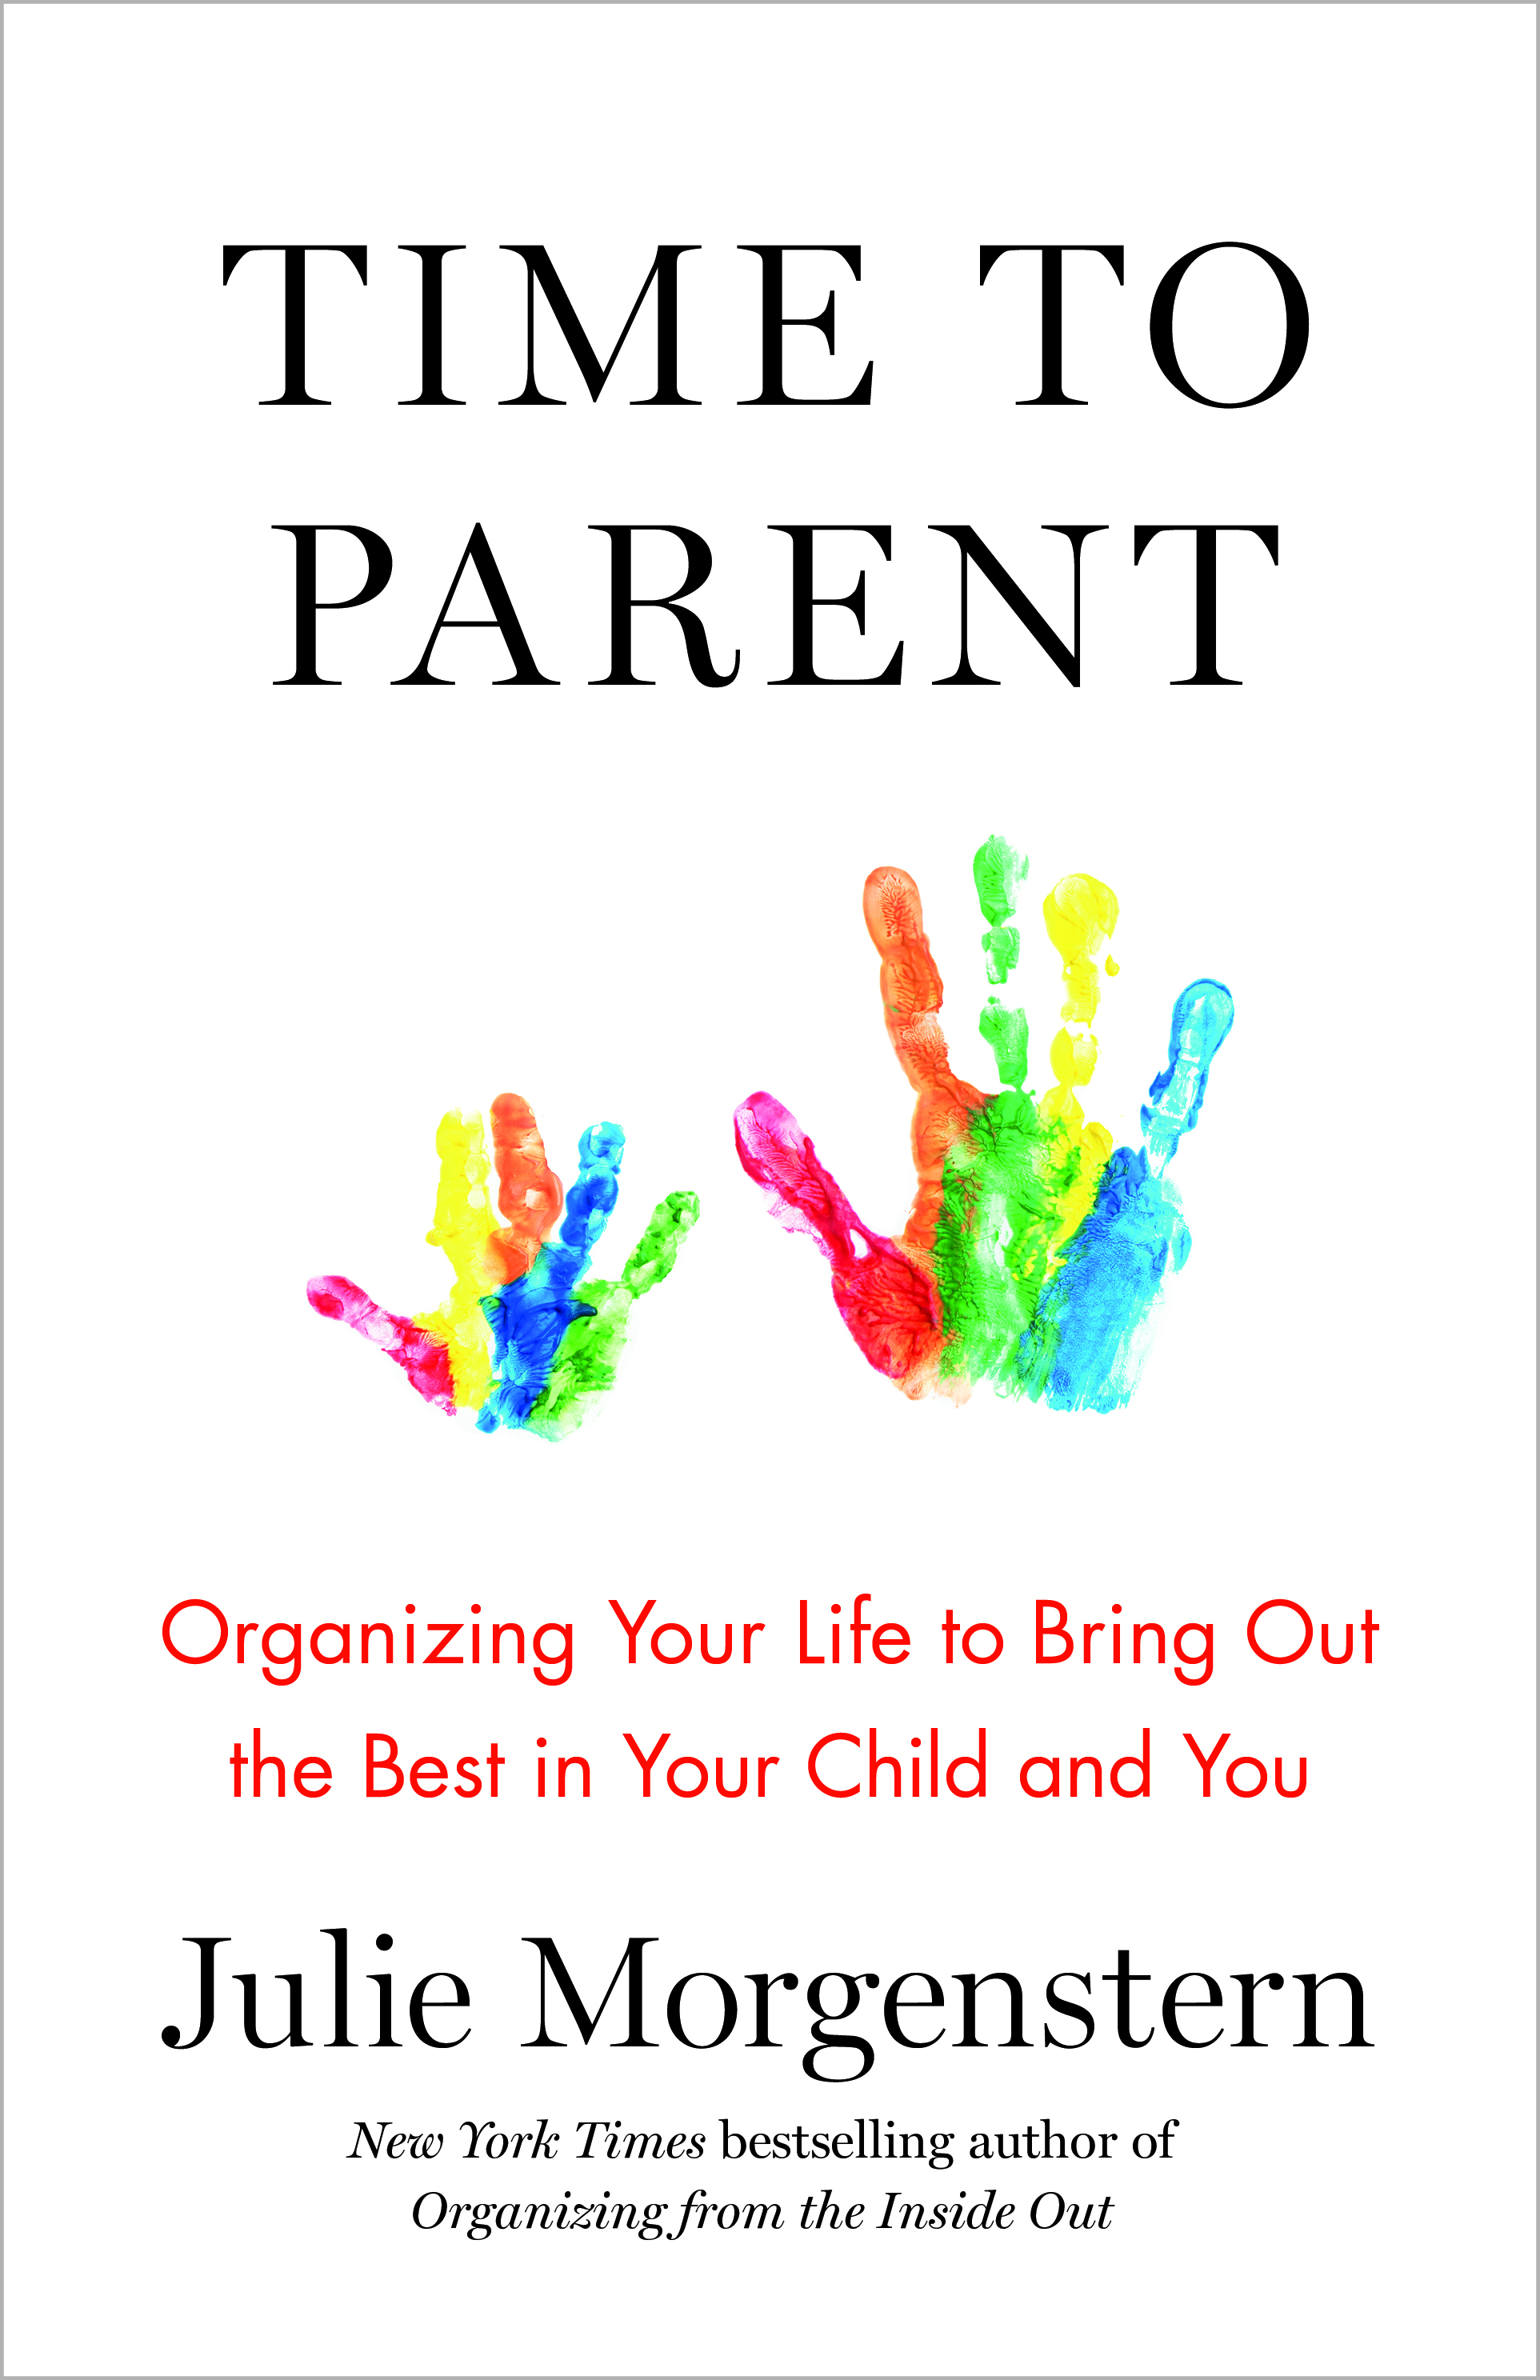 Every parent needs this book!